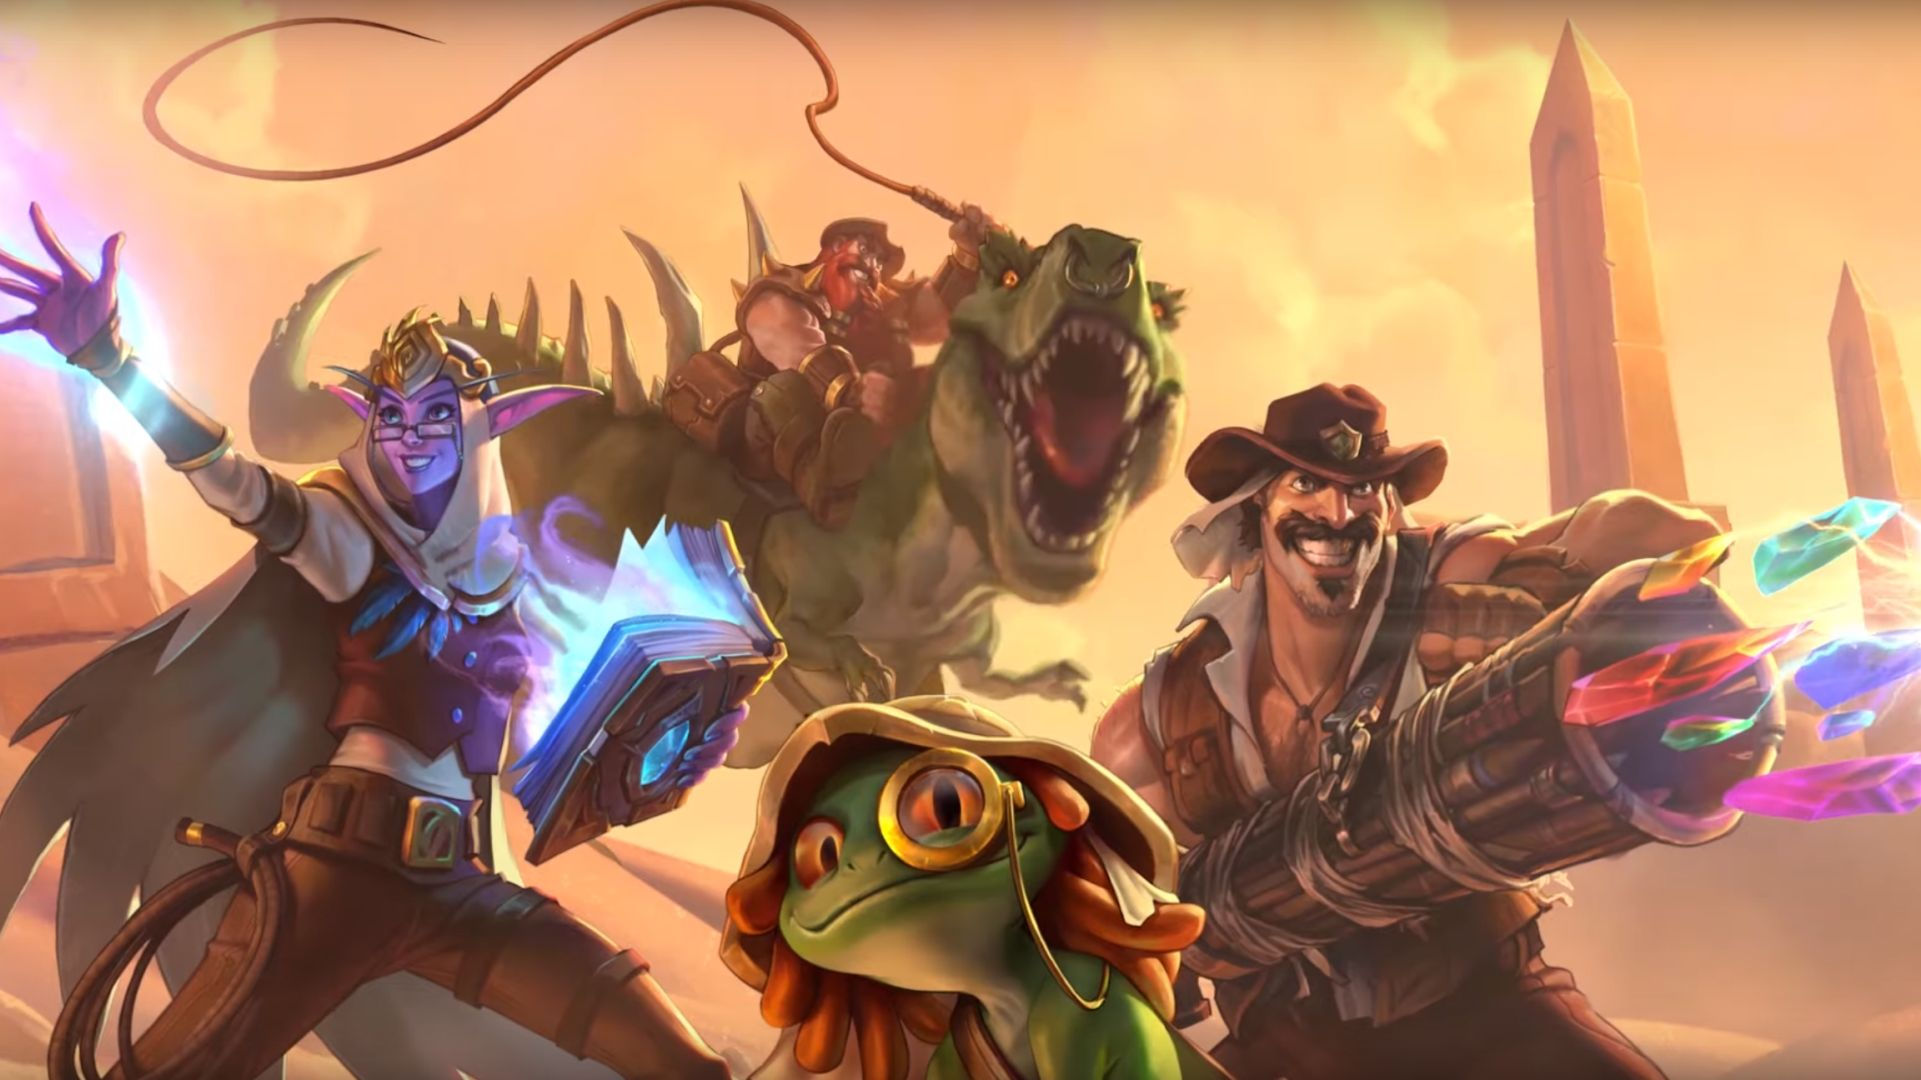 One of Hearthstone's new cards references Darude – Sandstorm